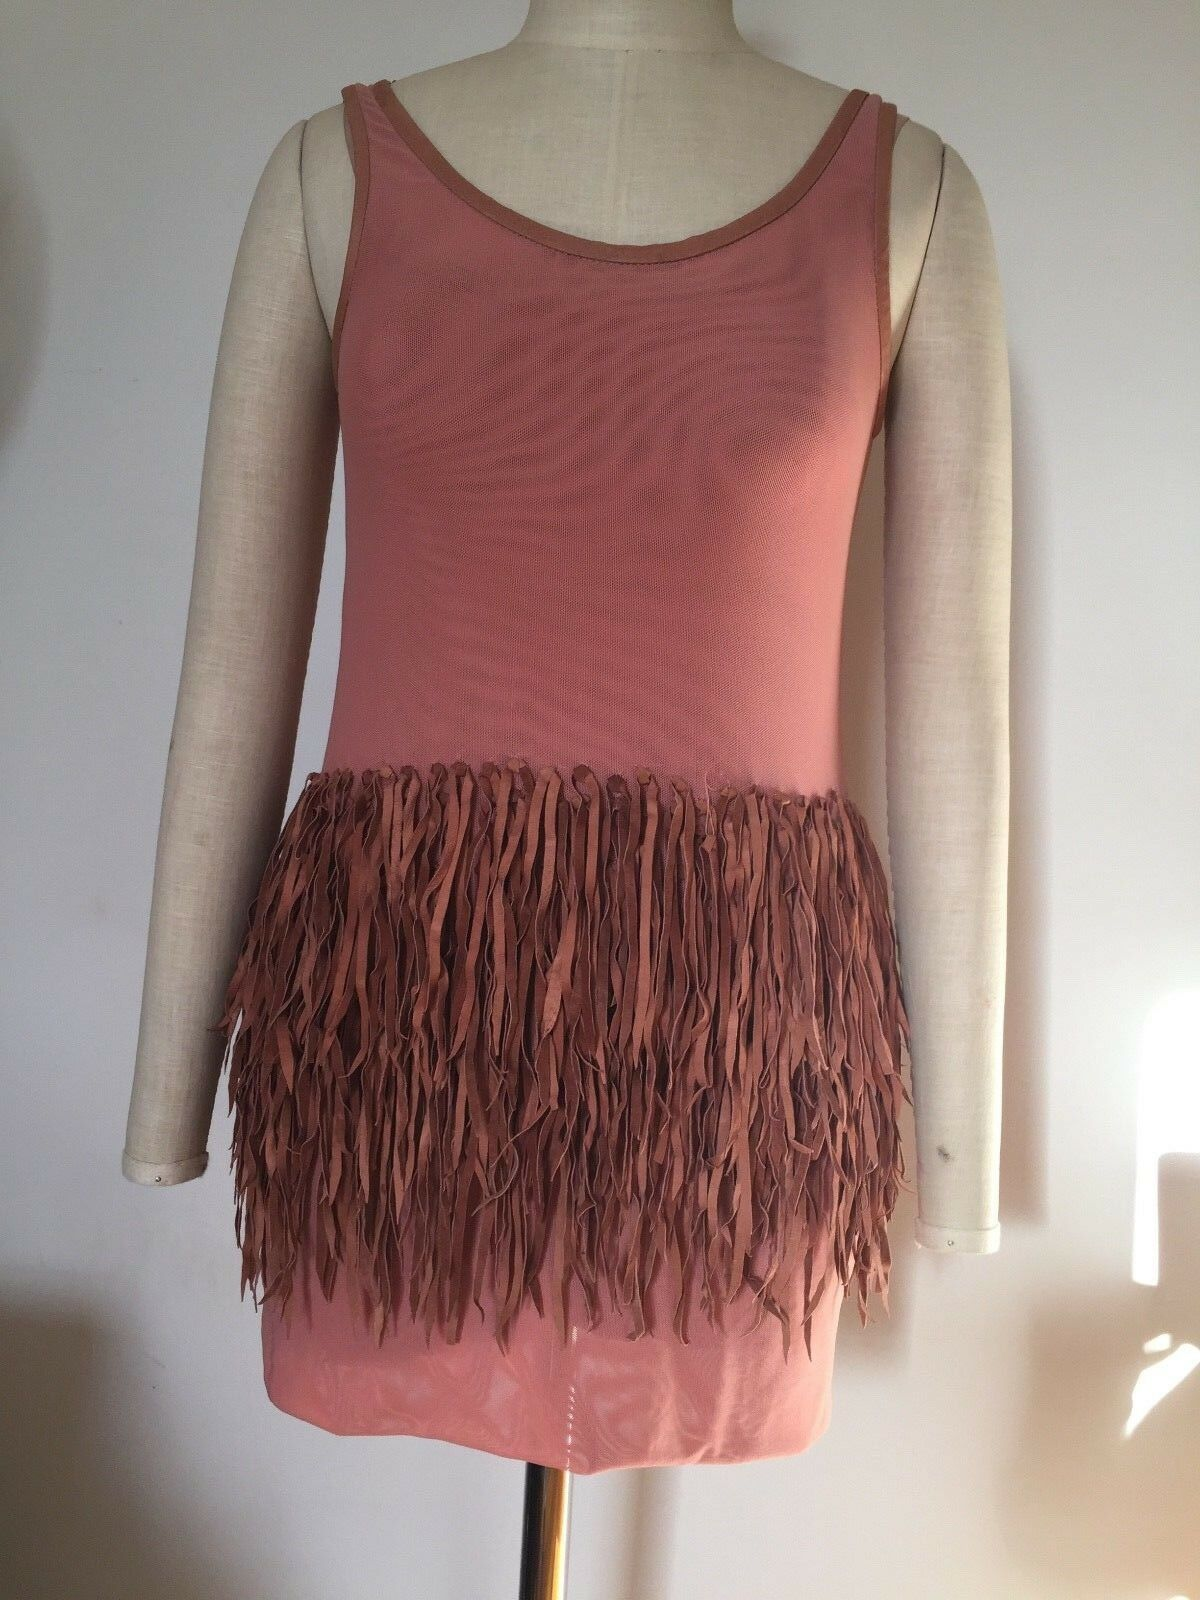 BNWOT sass and bide TASSELLED BANDS Dress  Long Top E36 AU8 10  Washable Leather